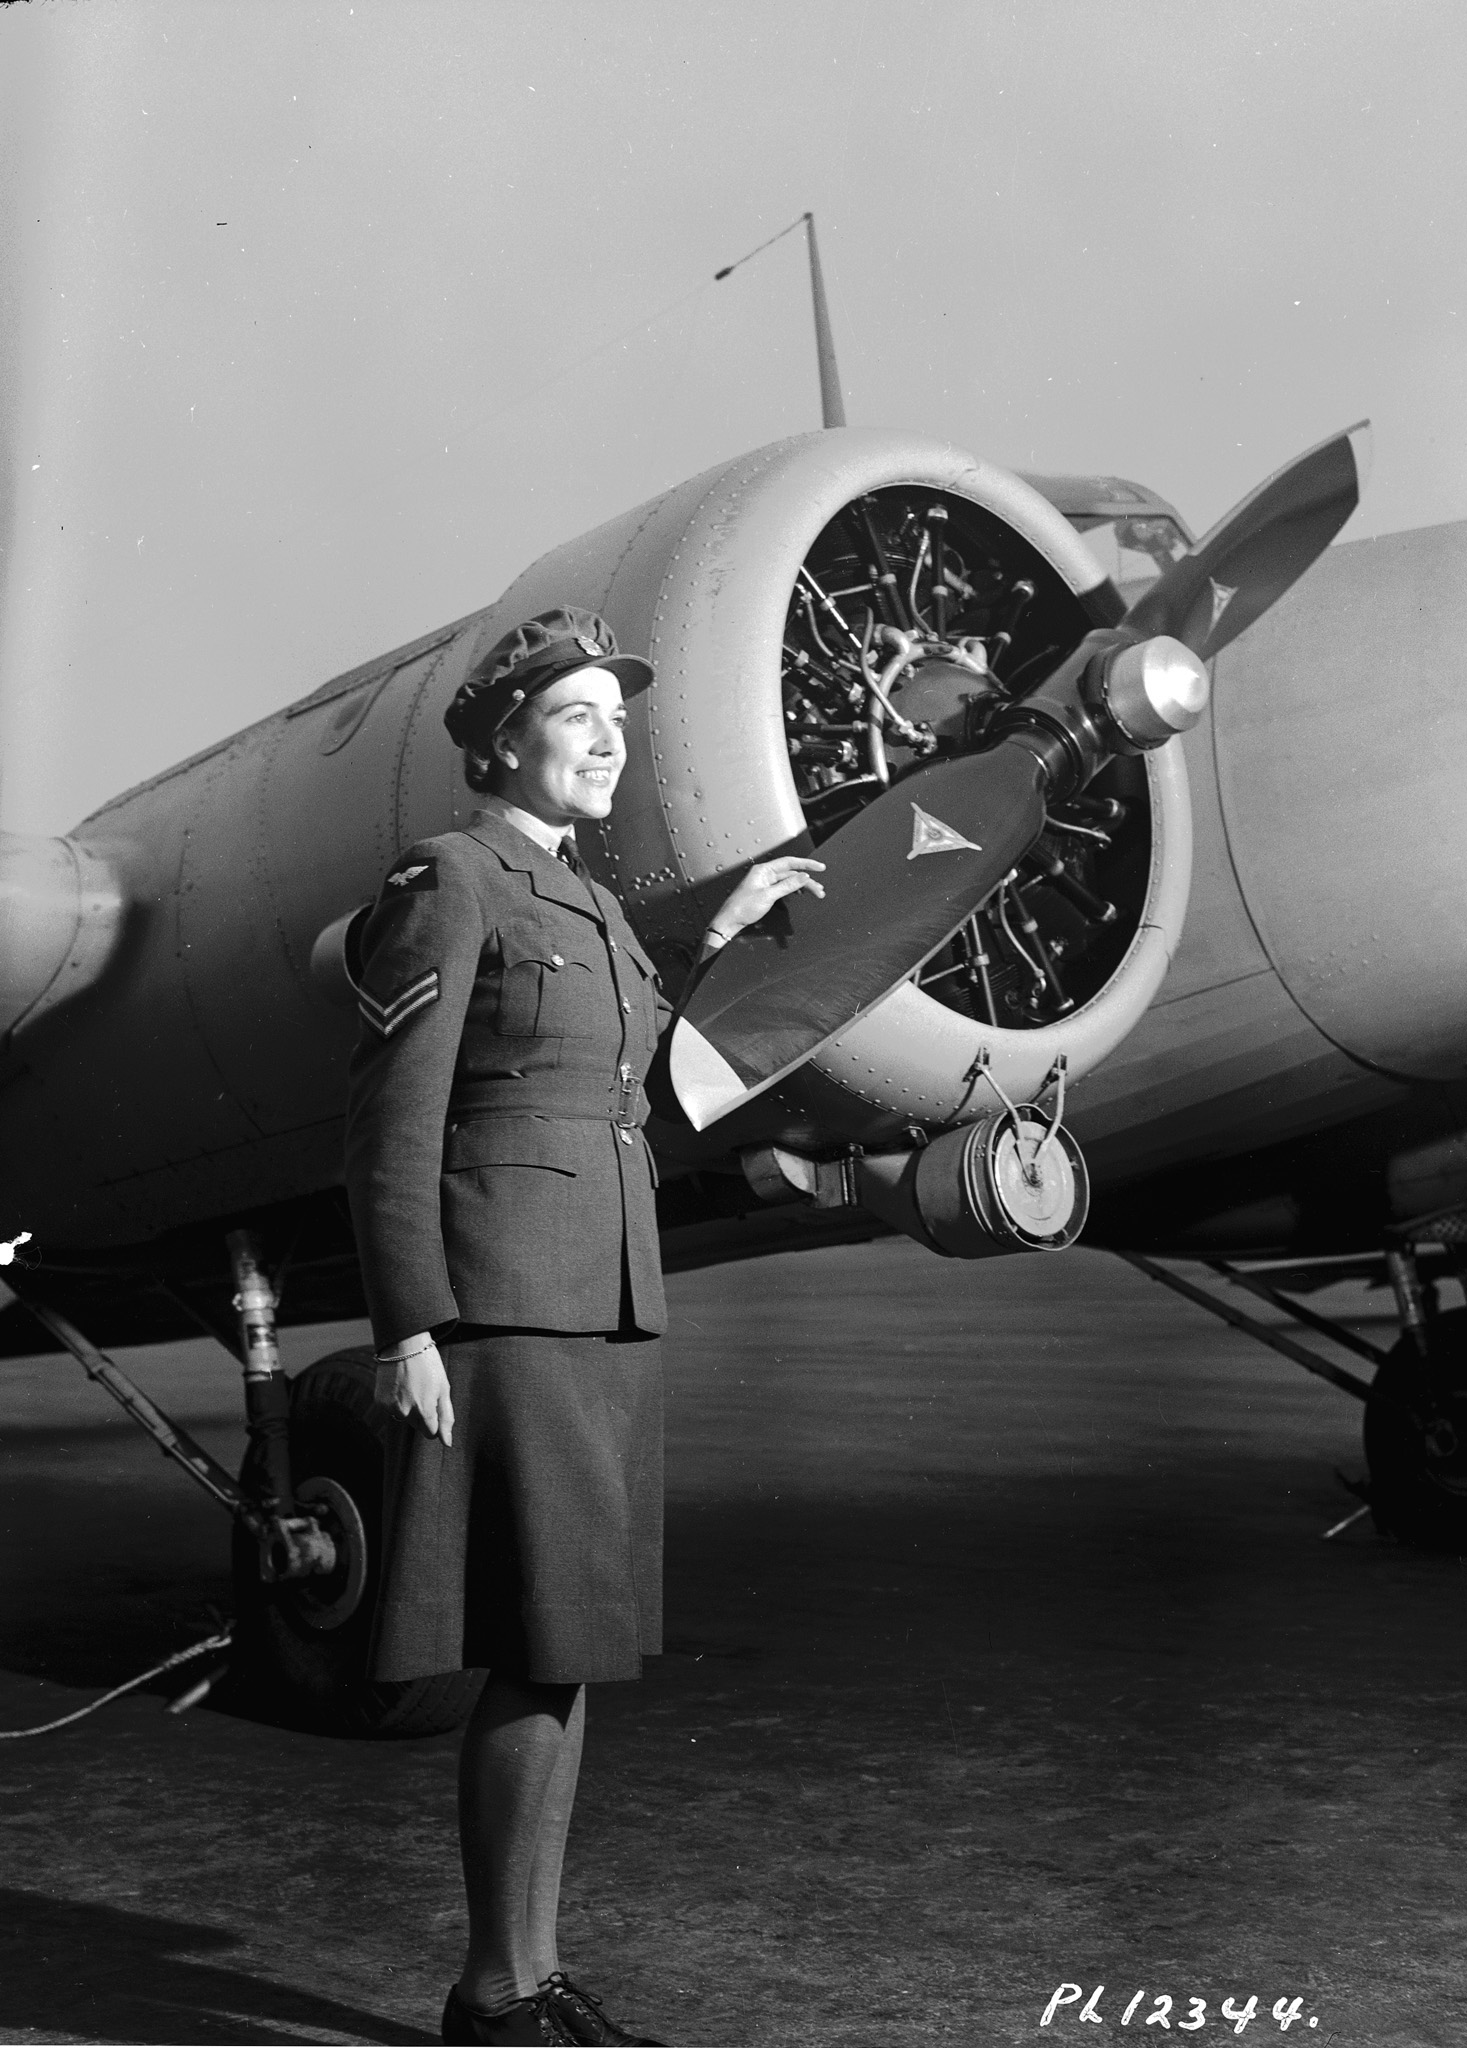 Corporal D.G. Richardson, of the RCAF Women's Division, looks to the future on October 23, 1942, at RCAF No. 7 Service Flying Training School, in MacLeod, Alberta. PHOTO: DND Archives, PL-12344